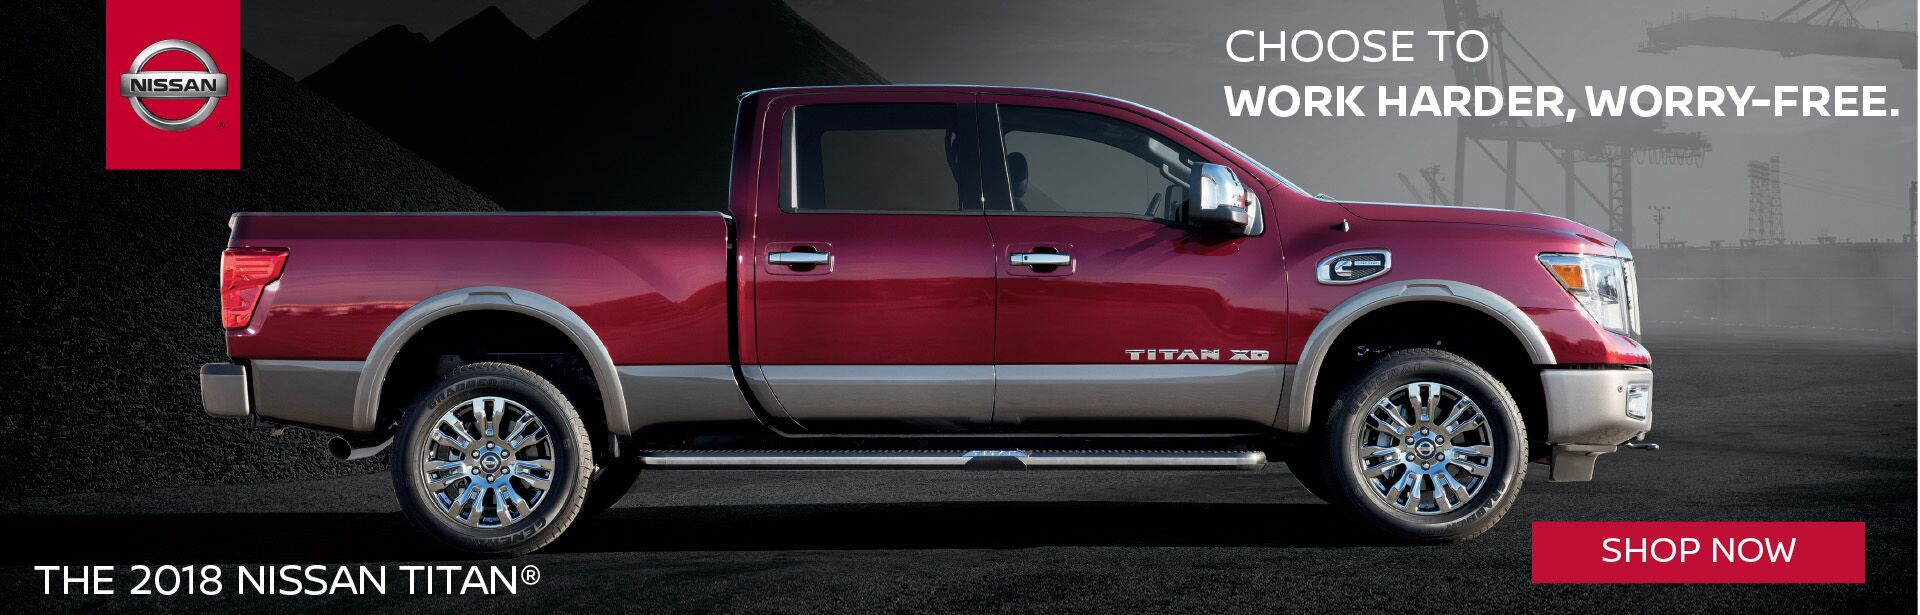 Nissan Titan Offer